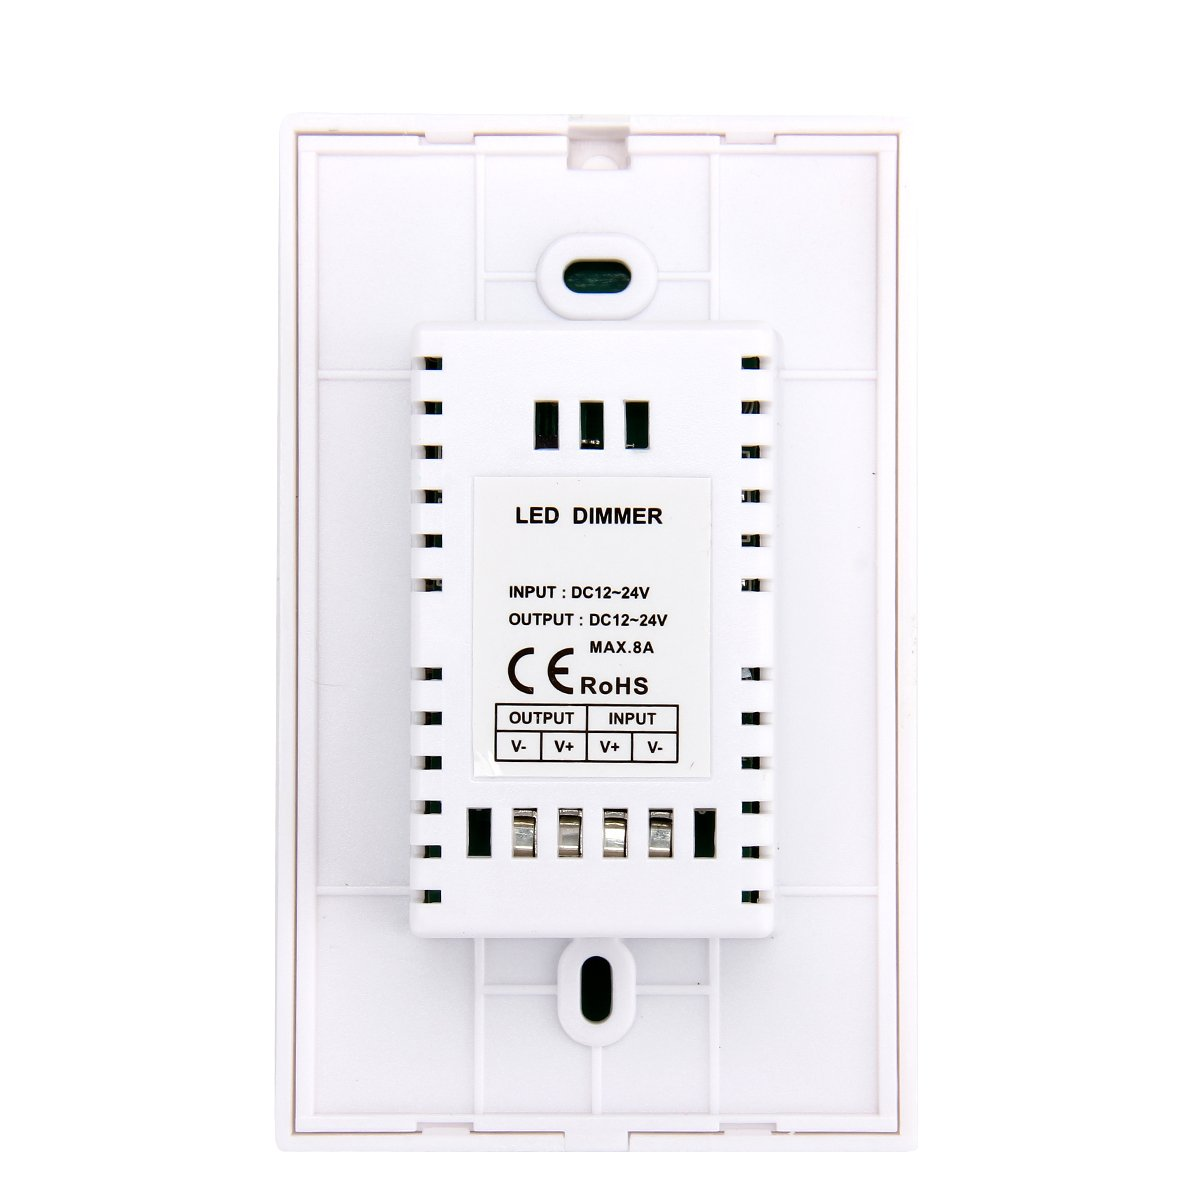 Wall-Mounted Glass Touch Panel LED Dimmer Switch Brightness Controller DC 12-24V for Single Color LED Strip Light Lamp-White